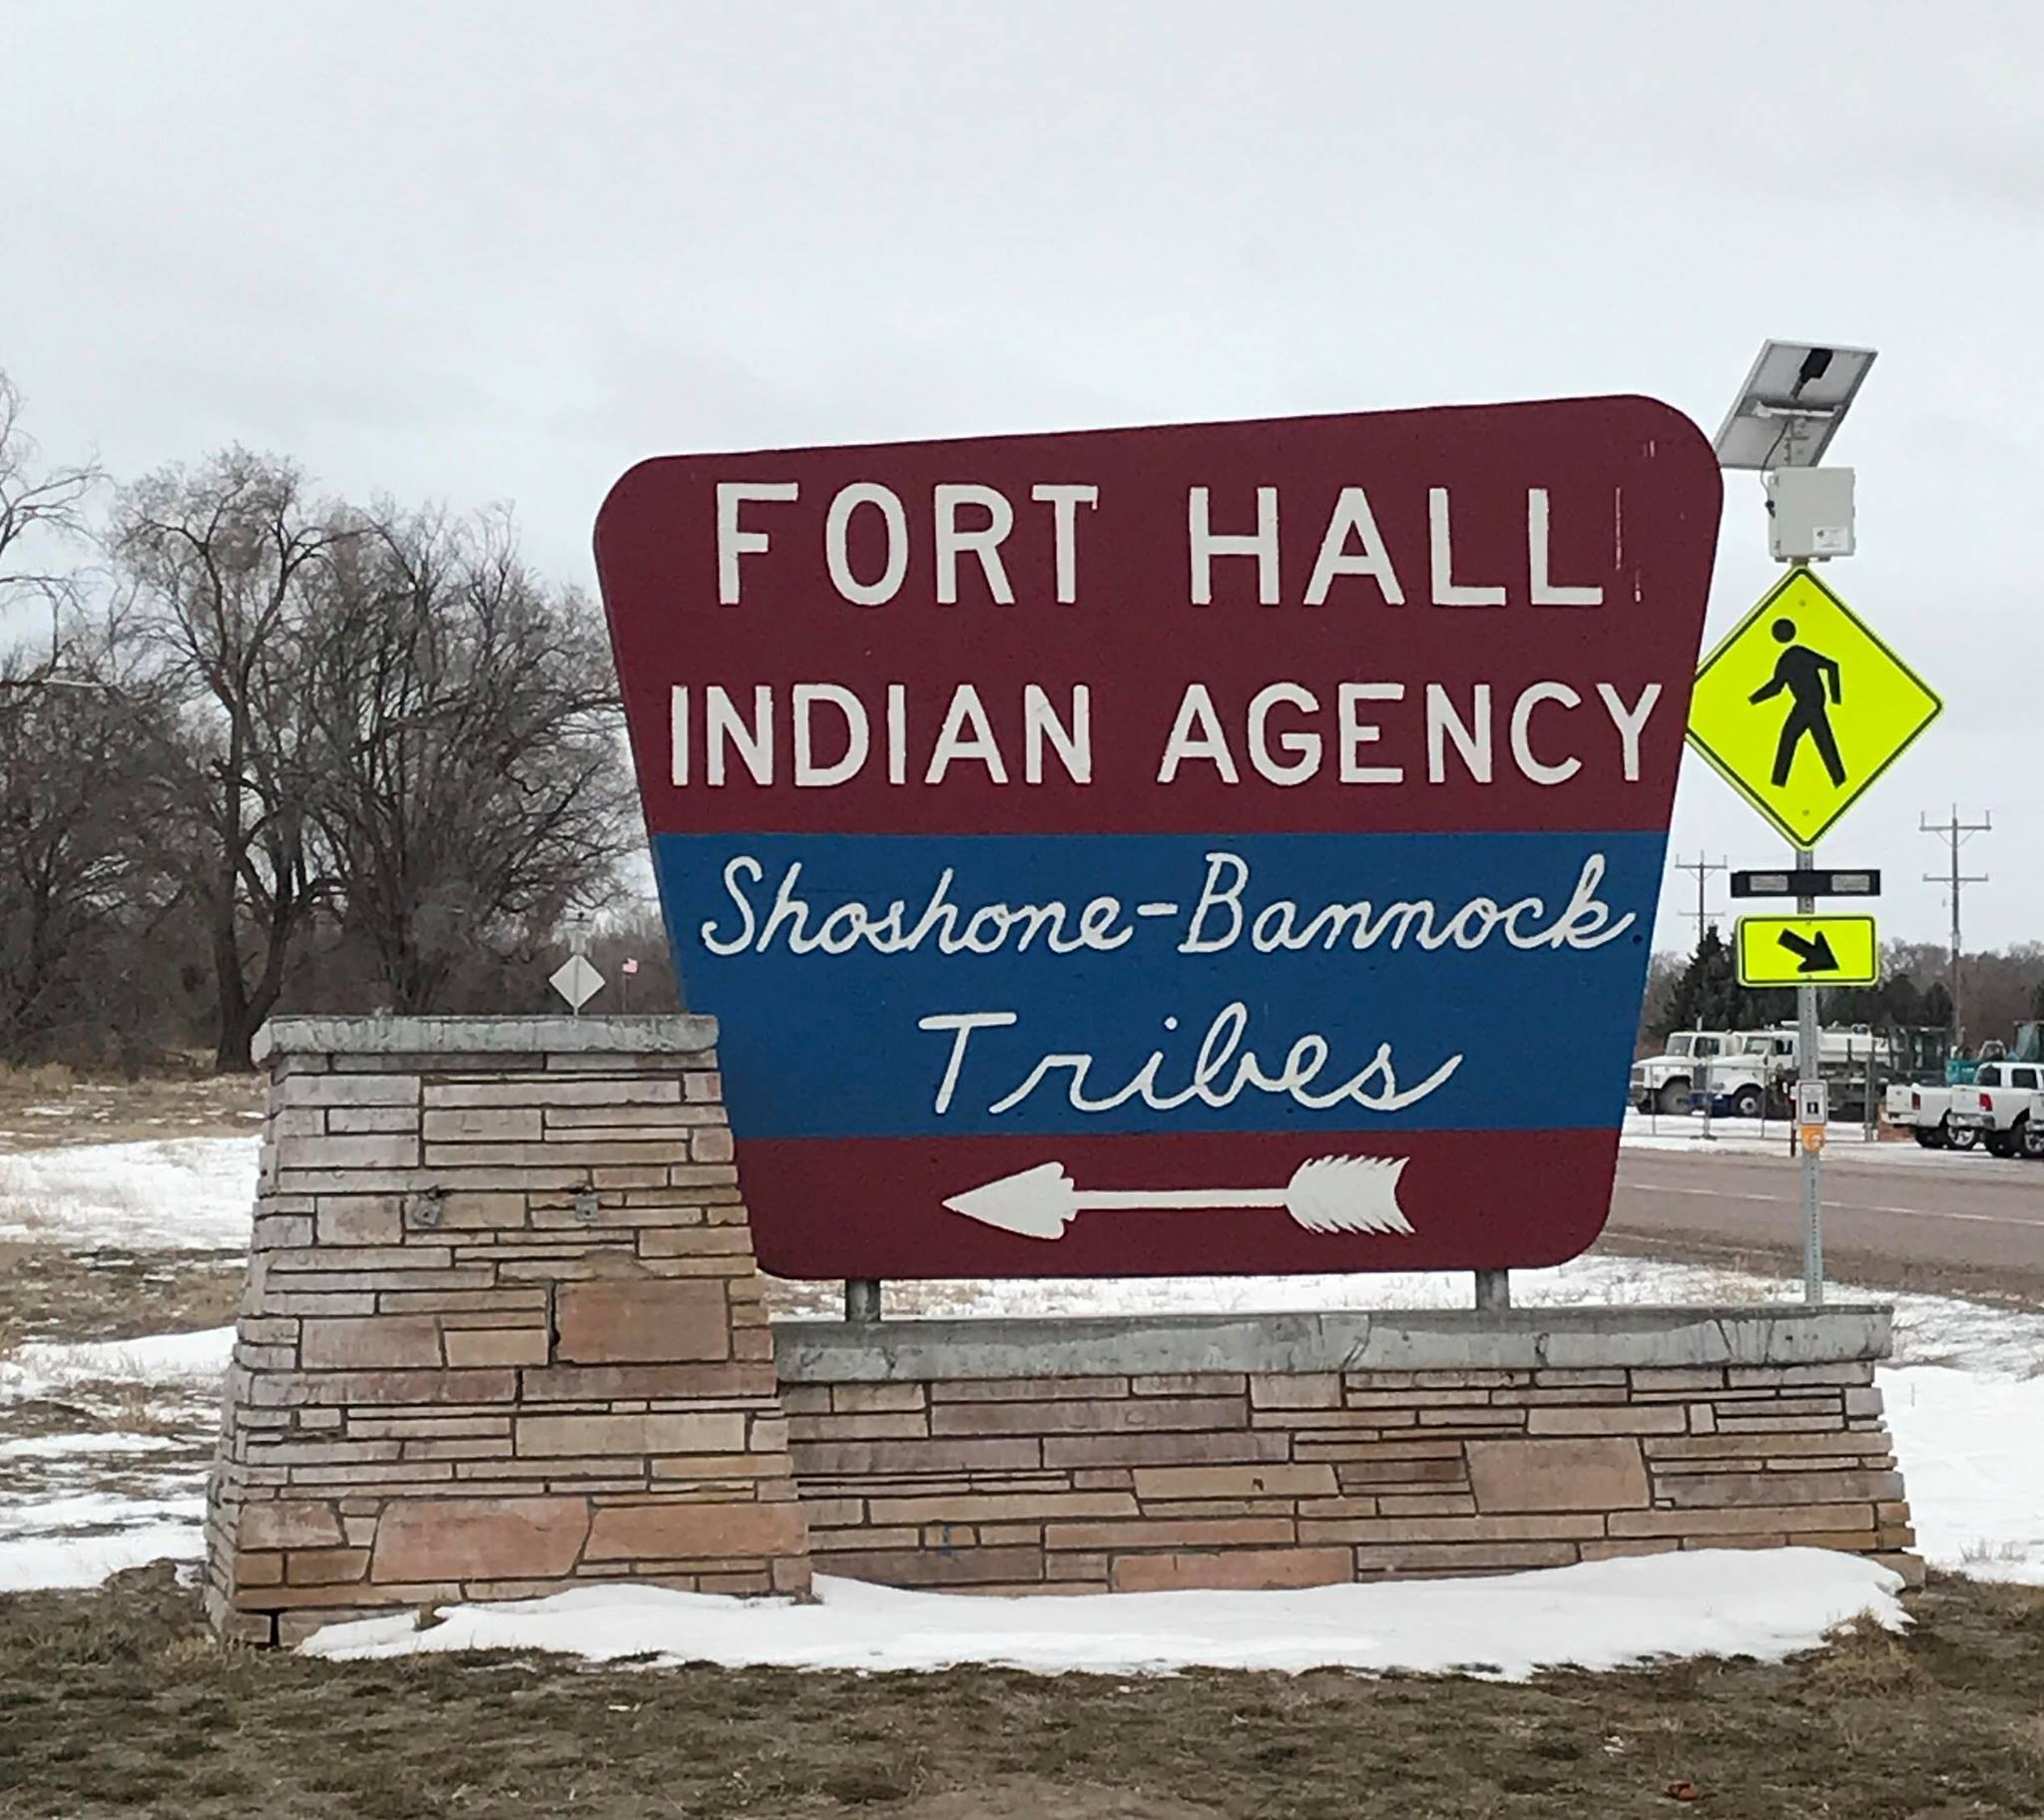 Shoshone-Bannock Tribes face rumors of casino following land purchase